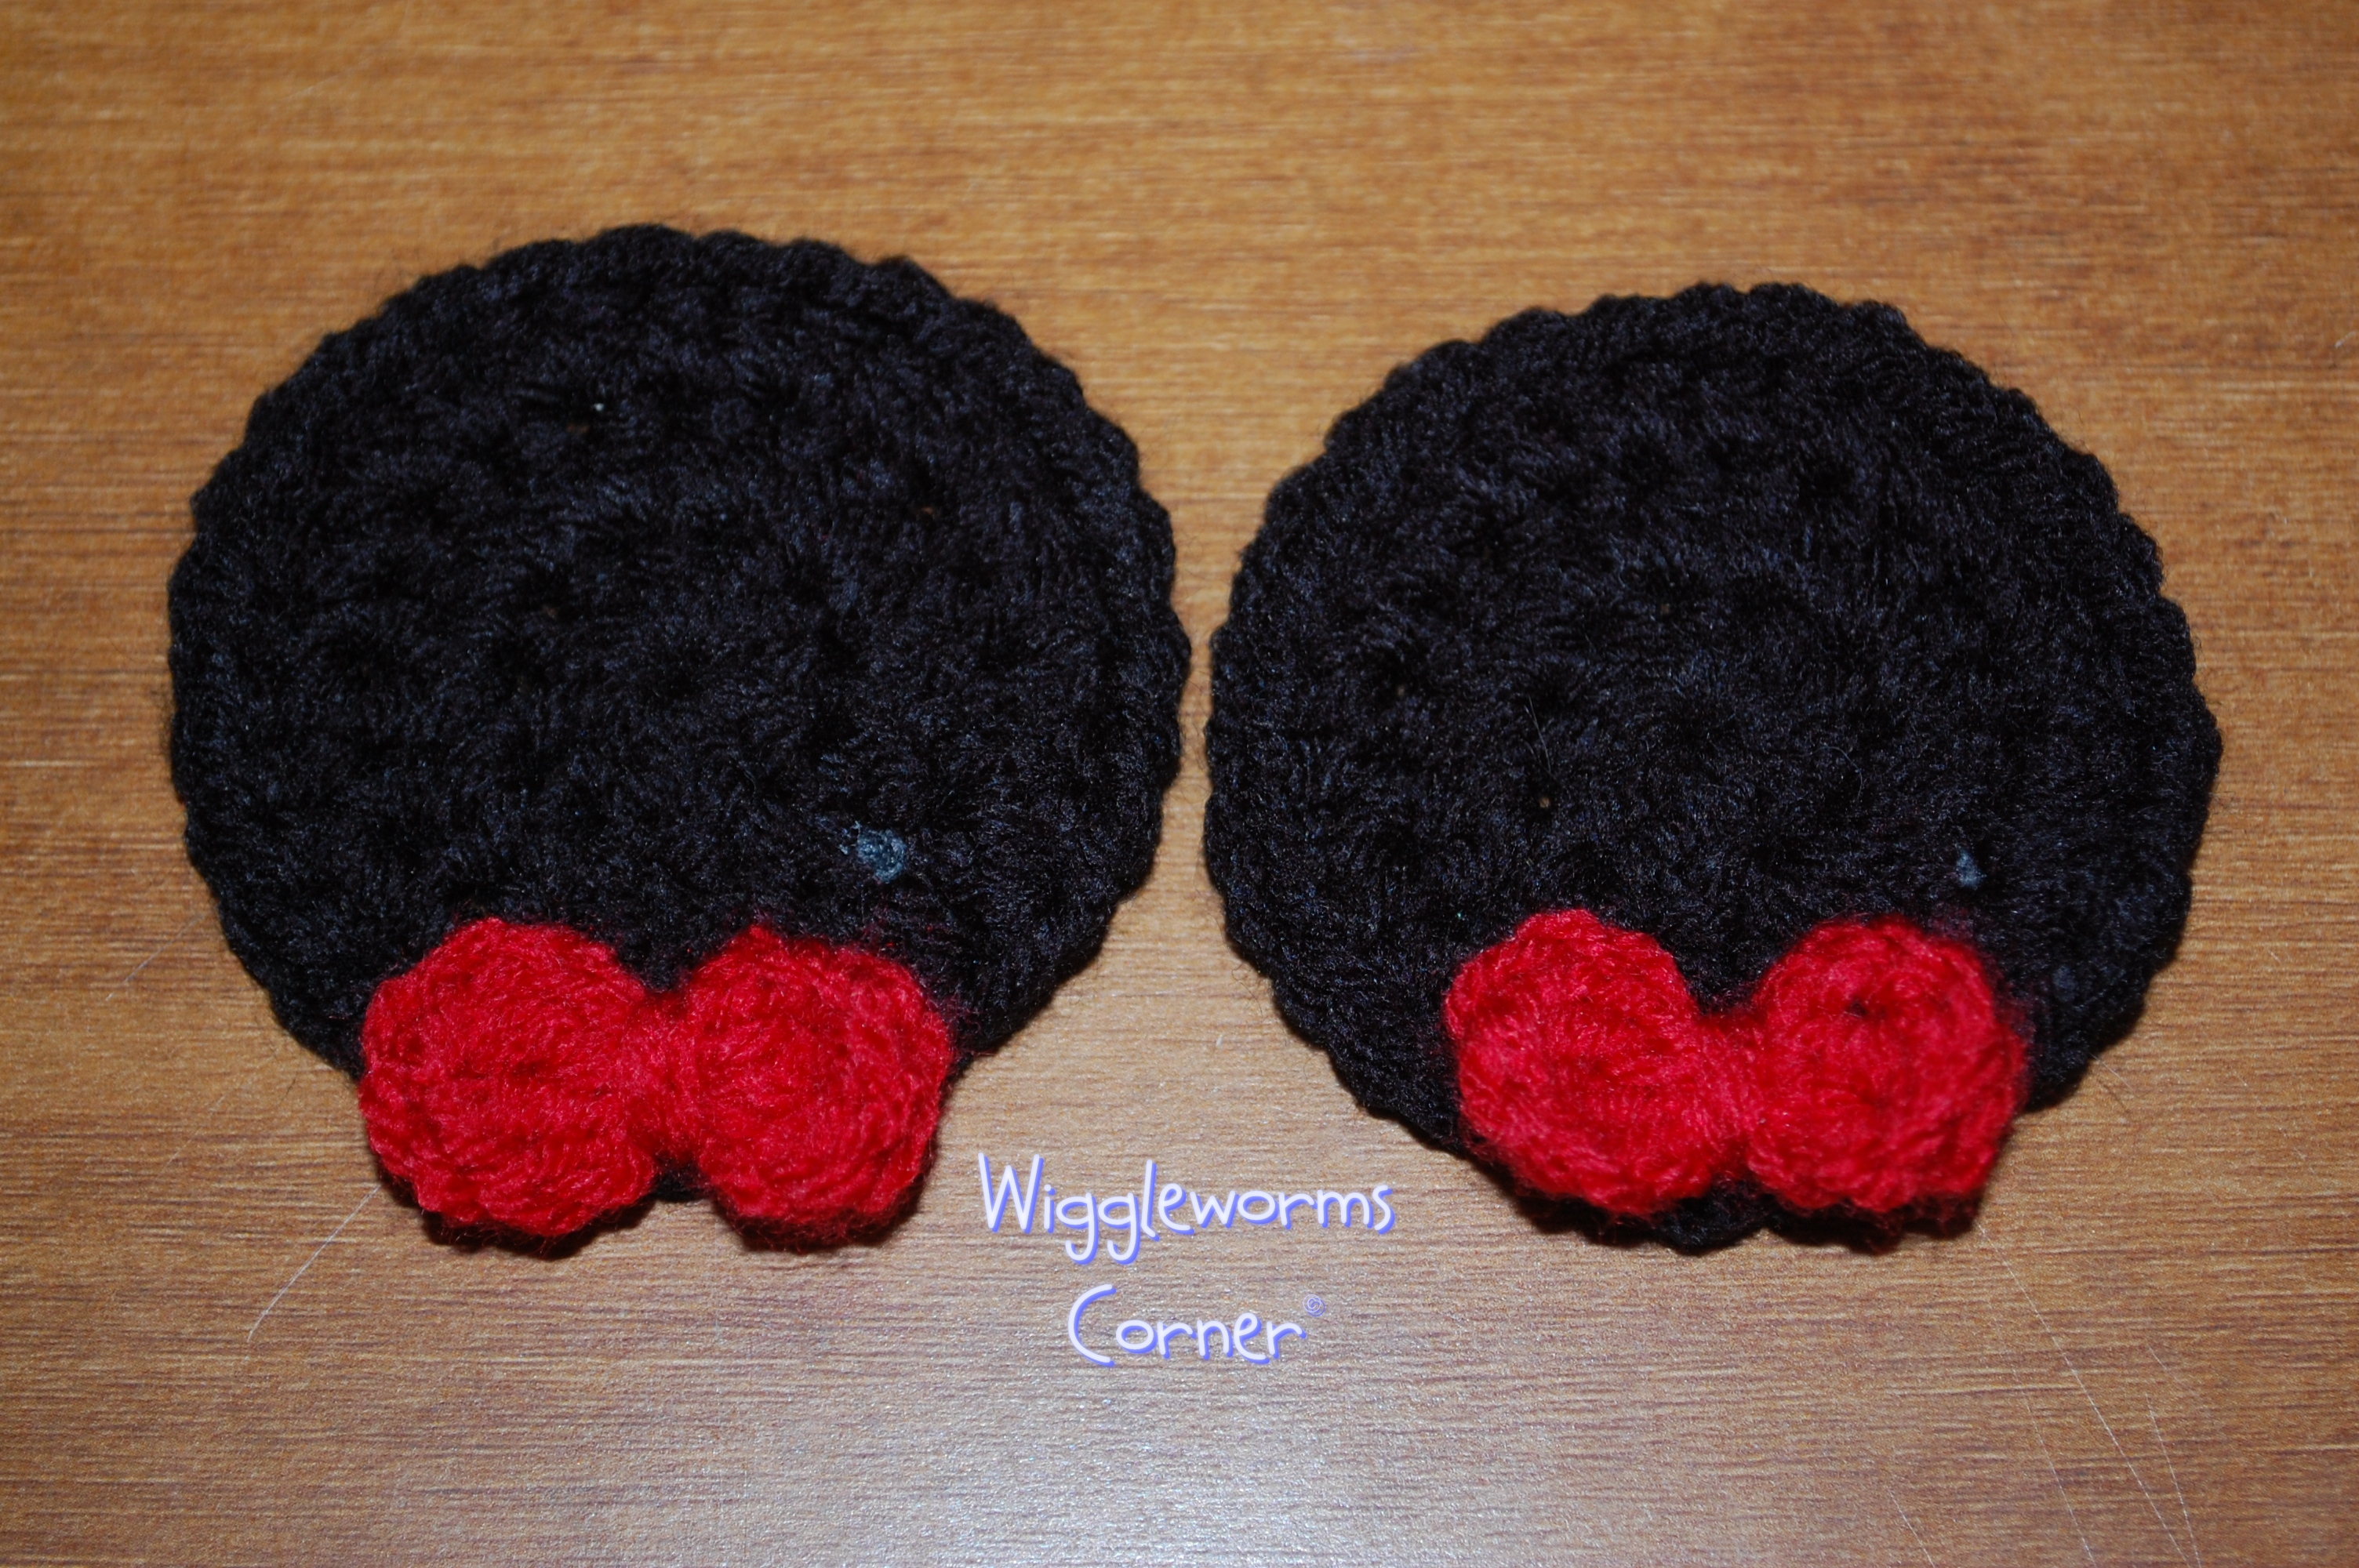 Wiggleworms Corner Crocheted Mouse Ears Online Store Powered By